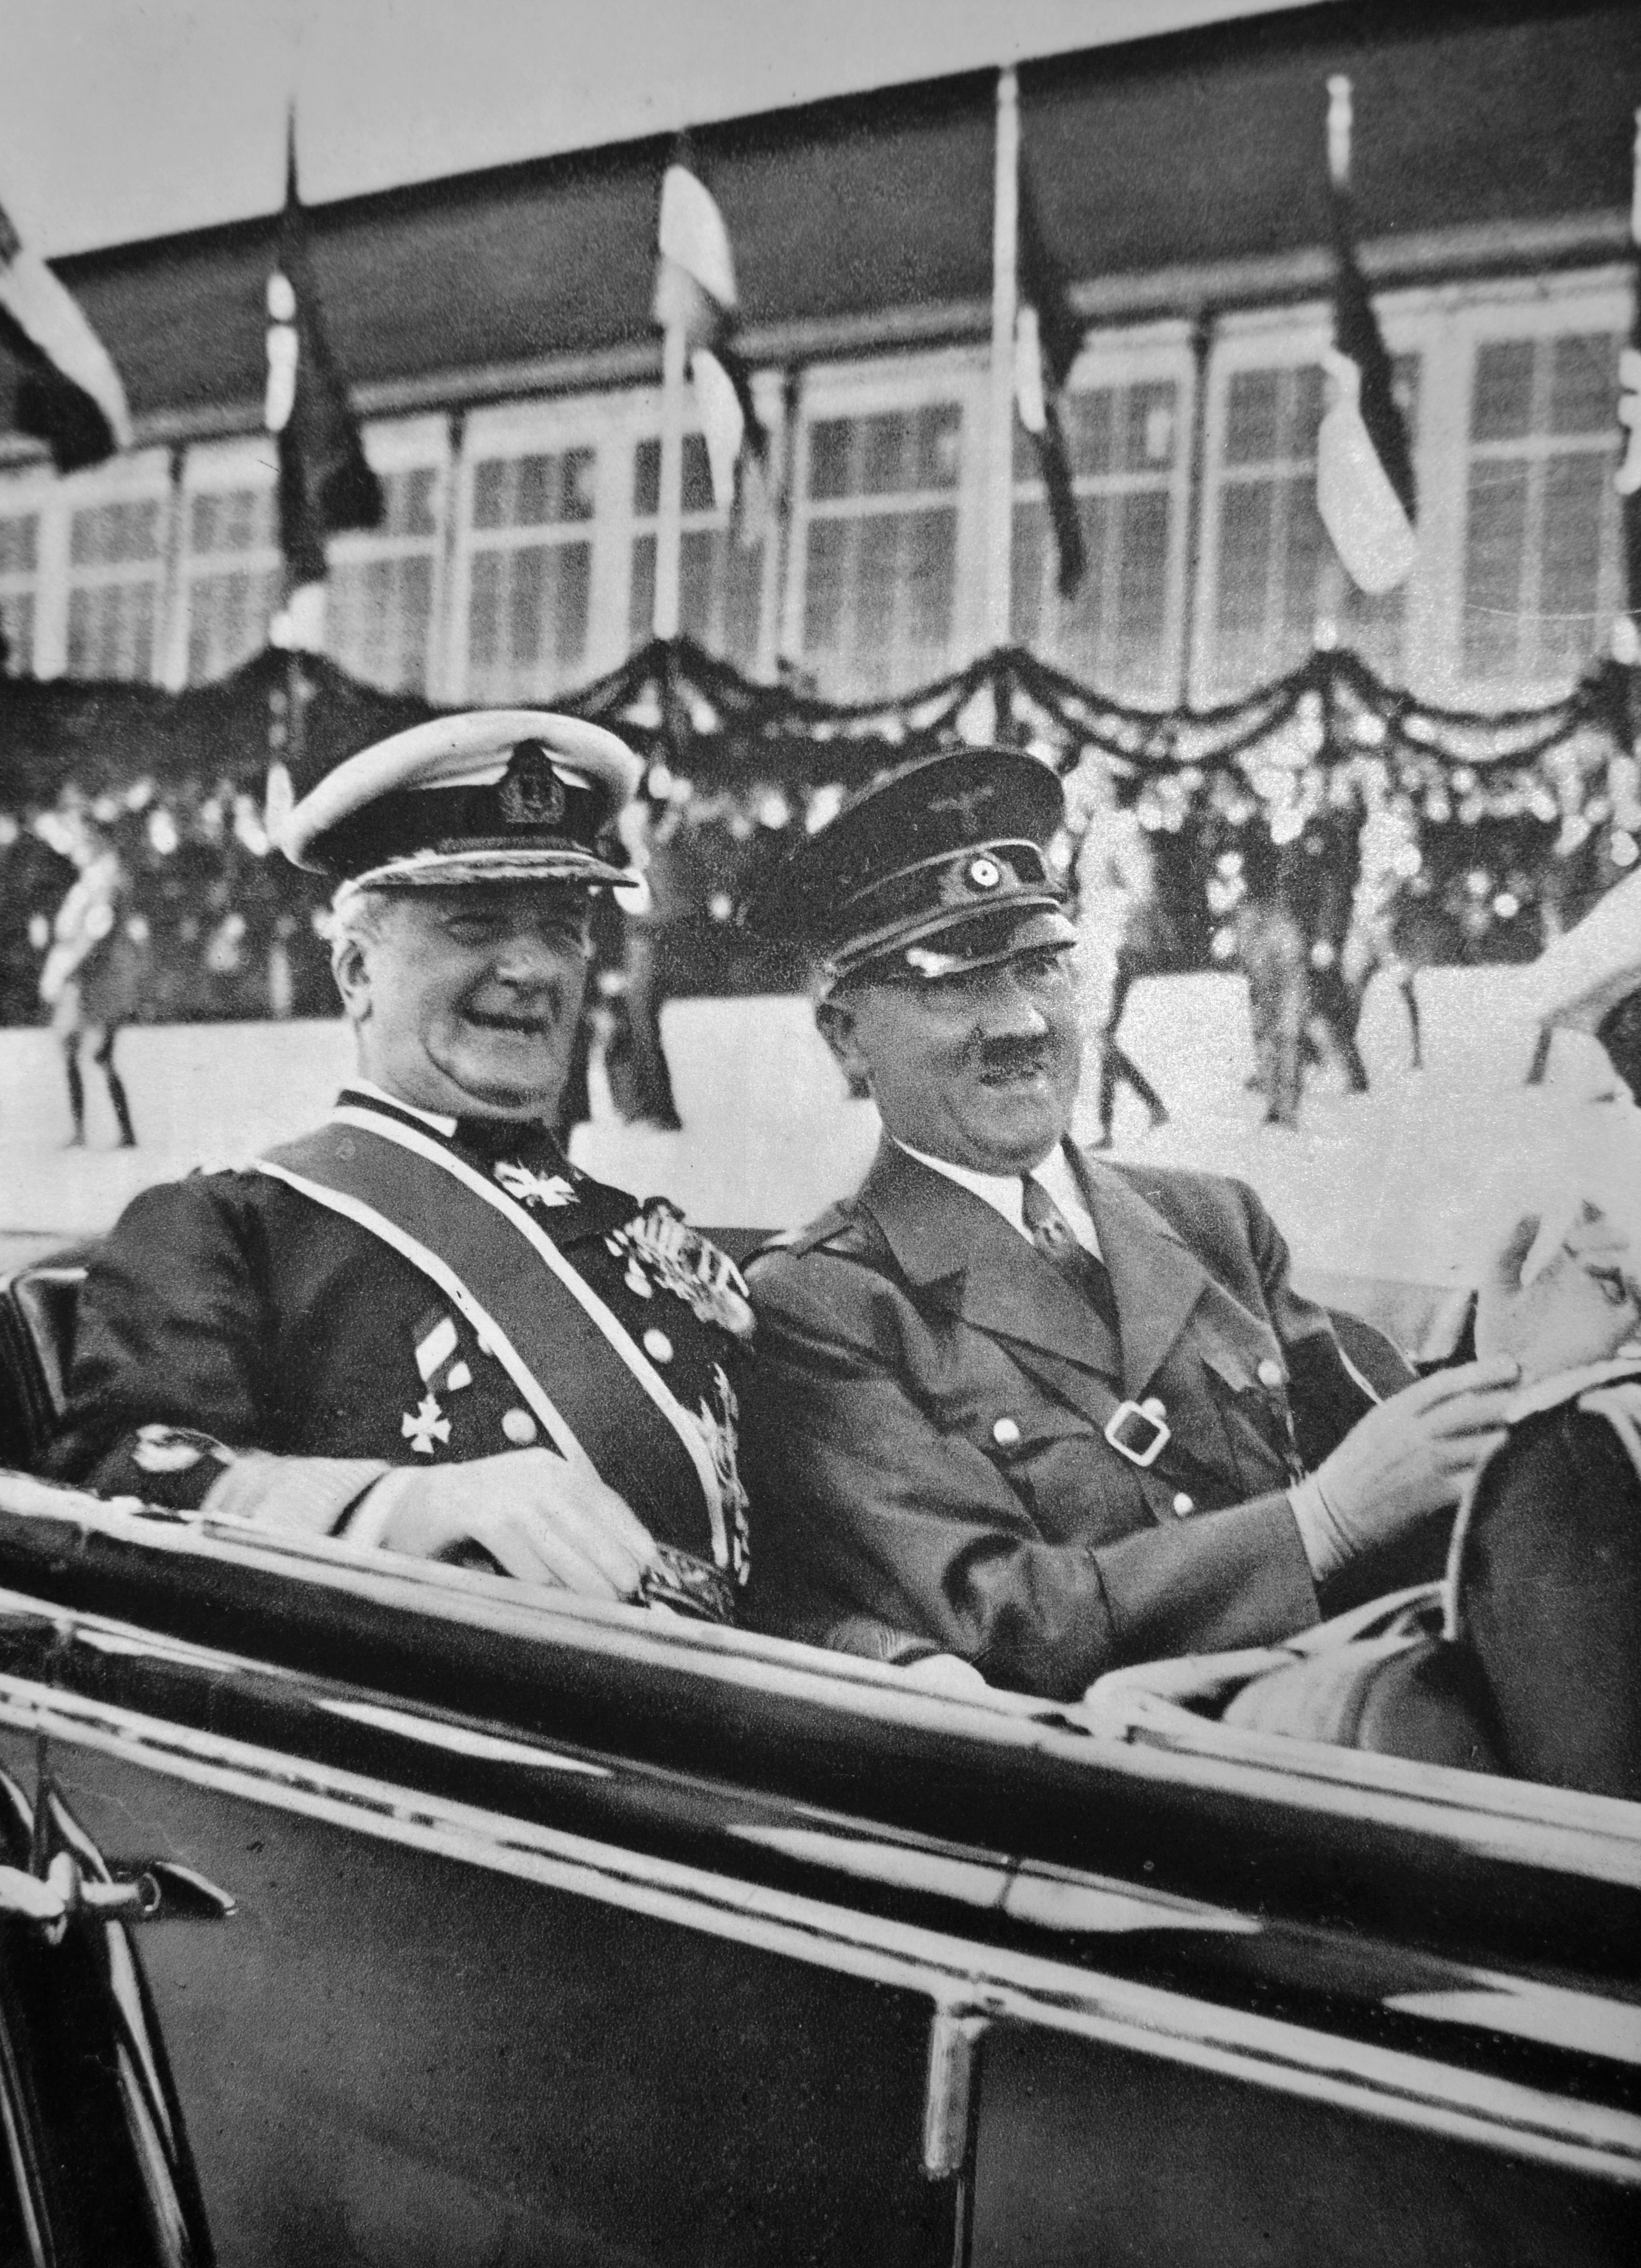 Adolf Hitler and Miklos Horthy on their way to Hamburg's town hall